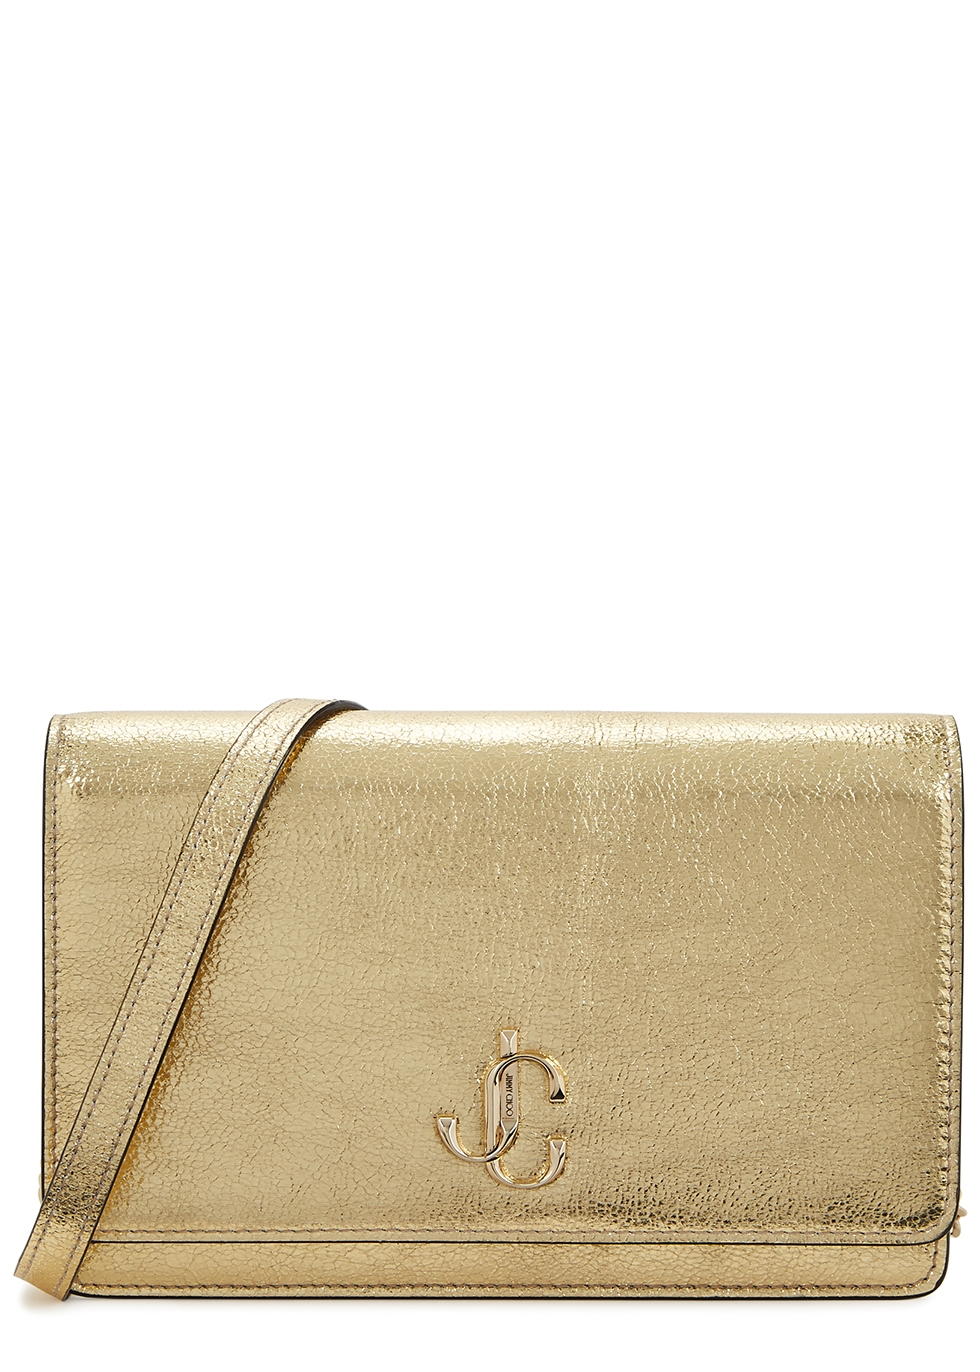 Palace gold leather wallet-on-chain